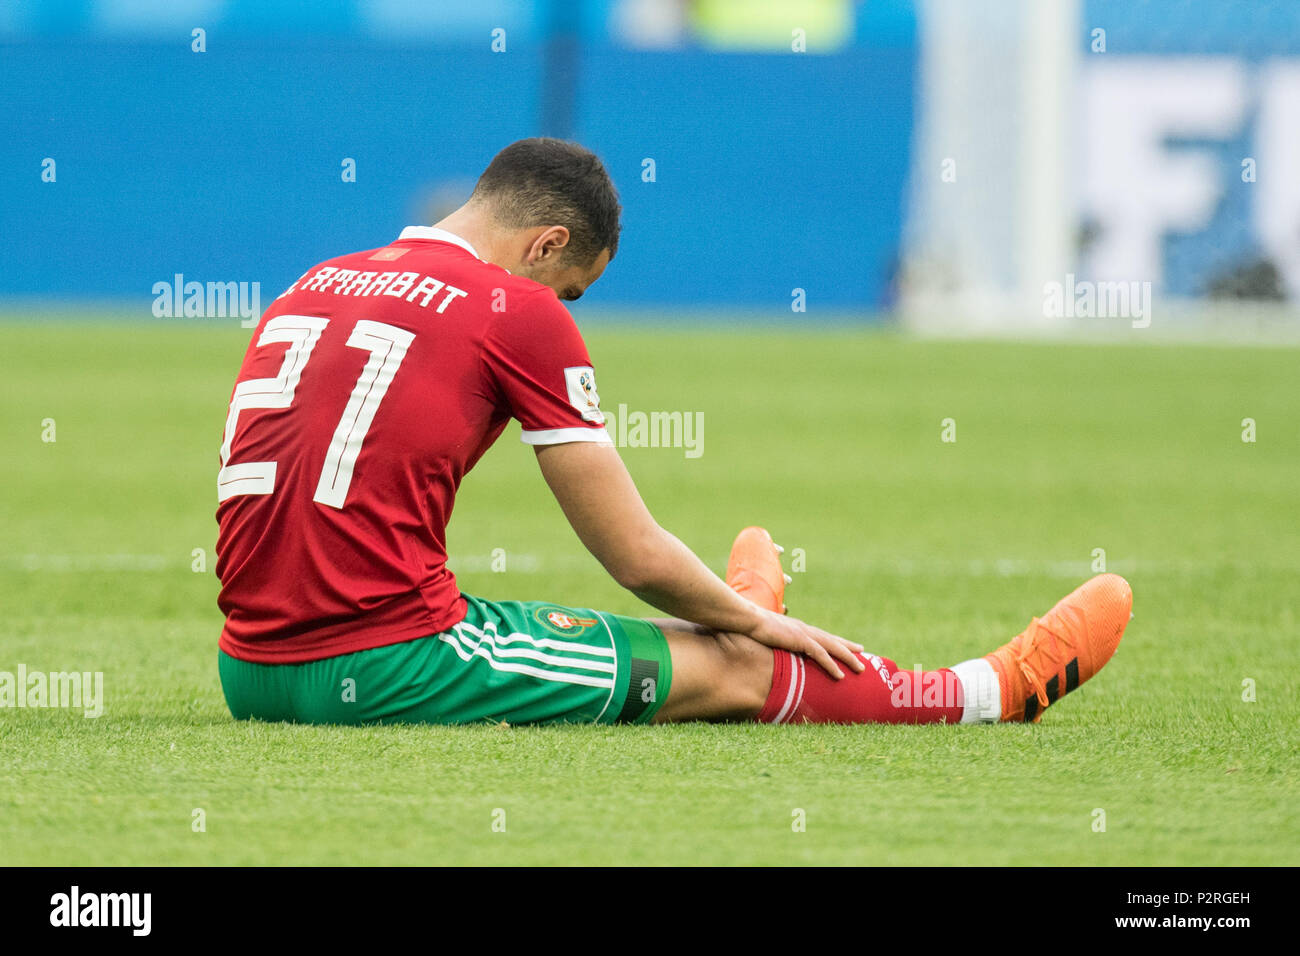 Sofyan Amrabat Mar Sits On The Pitch And Is Disappointed Showered